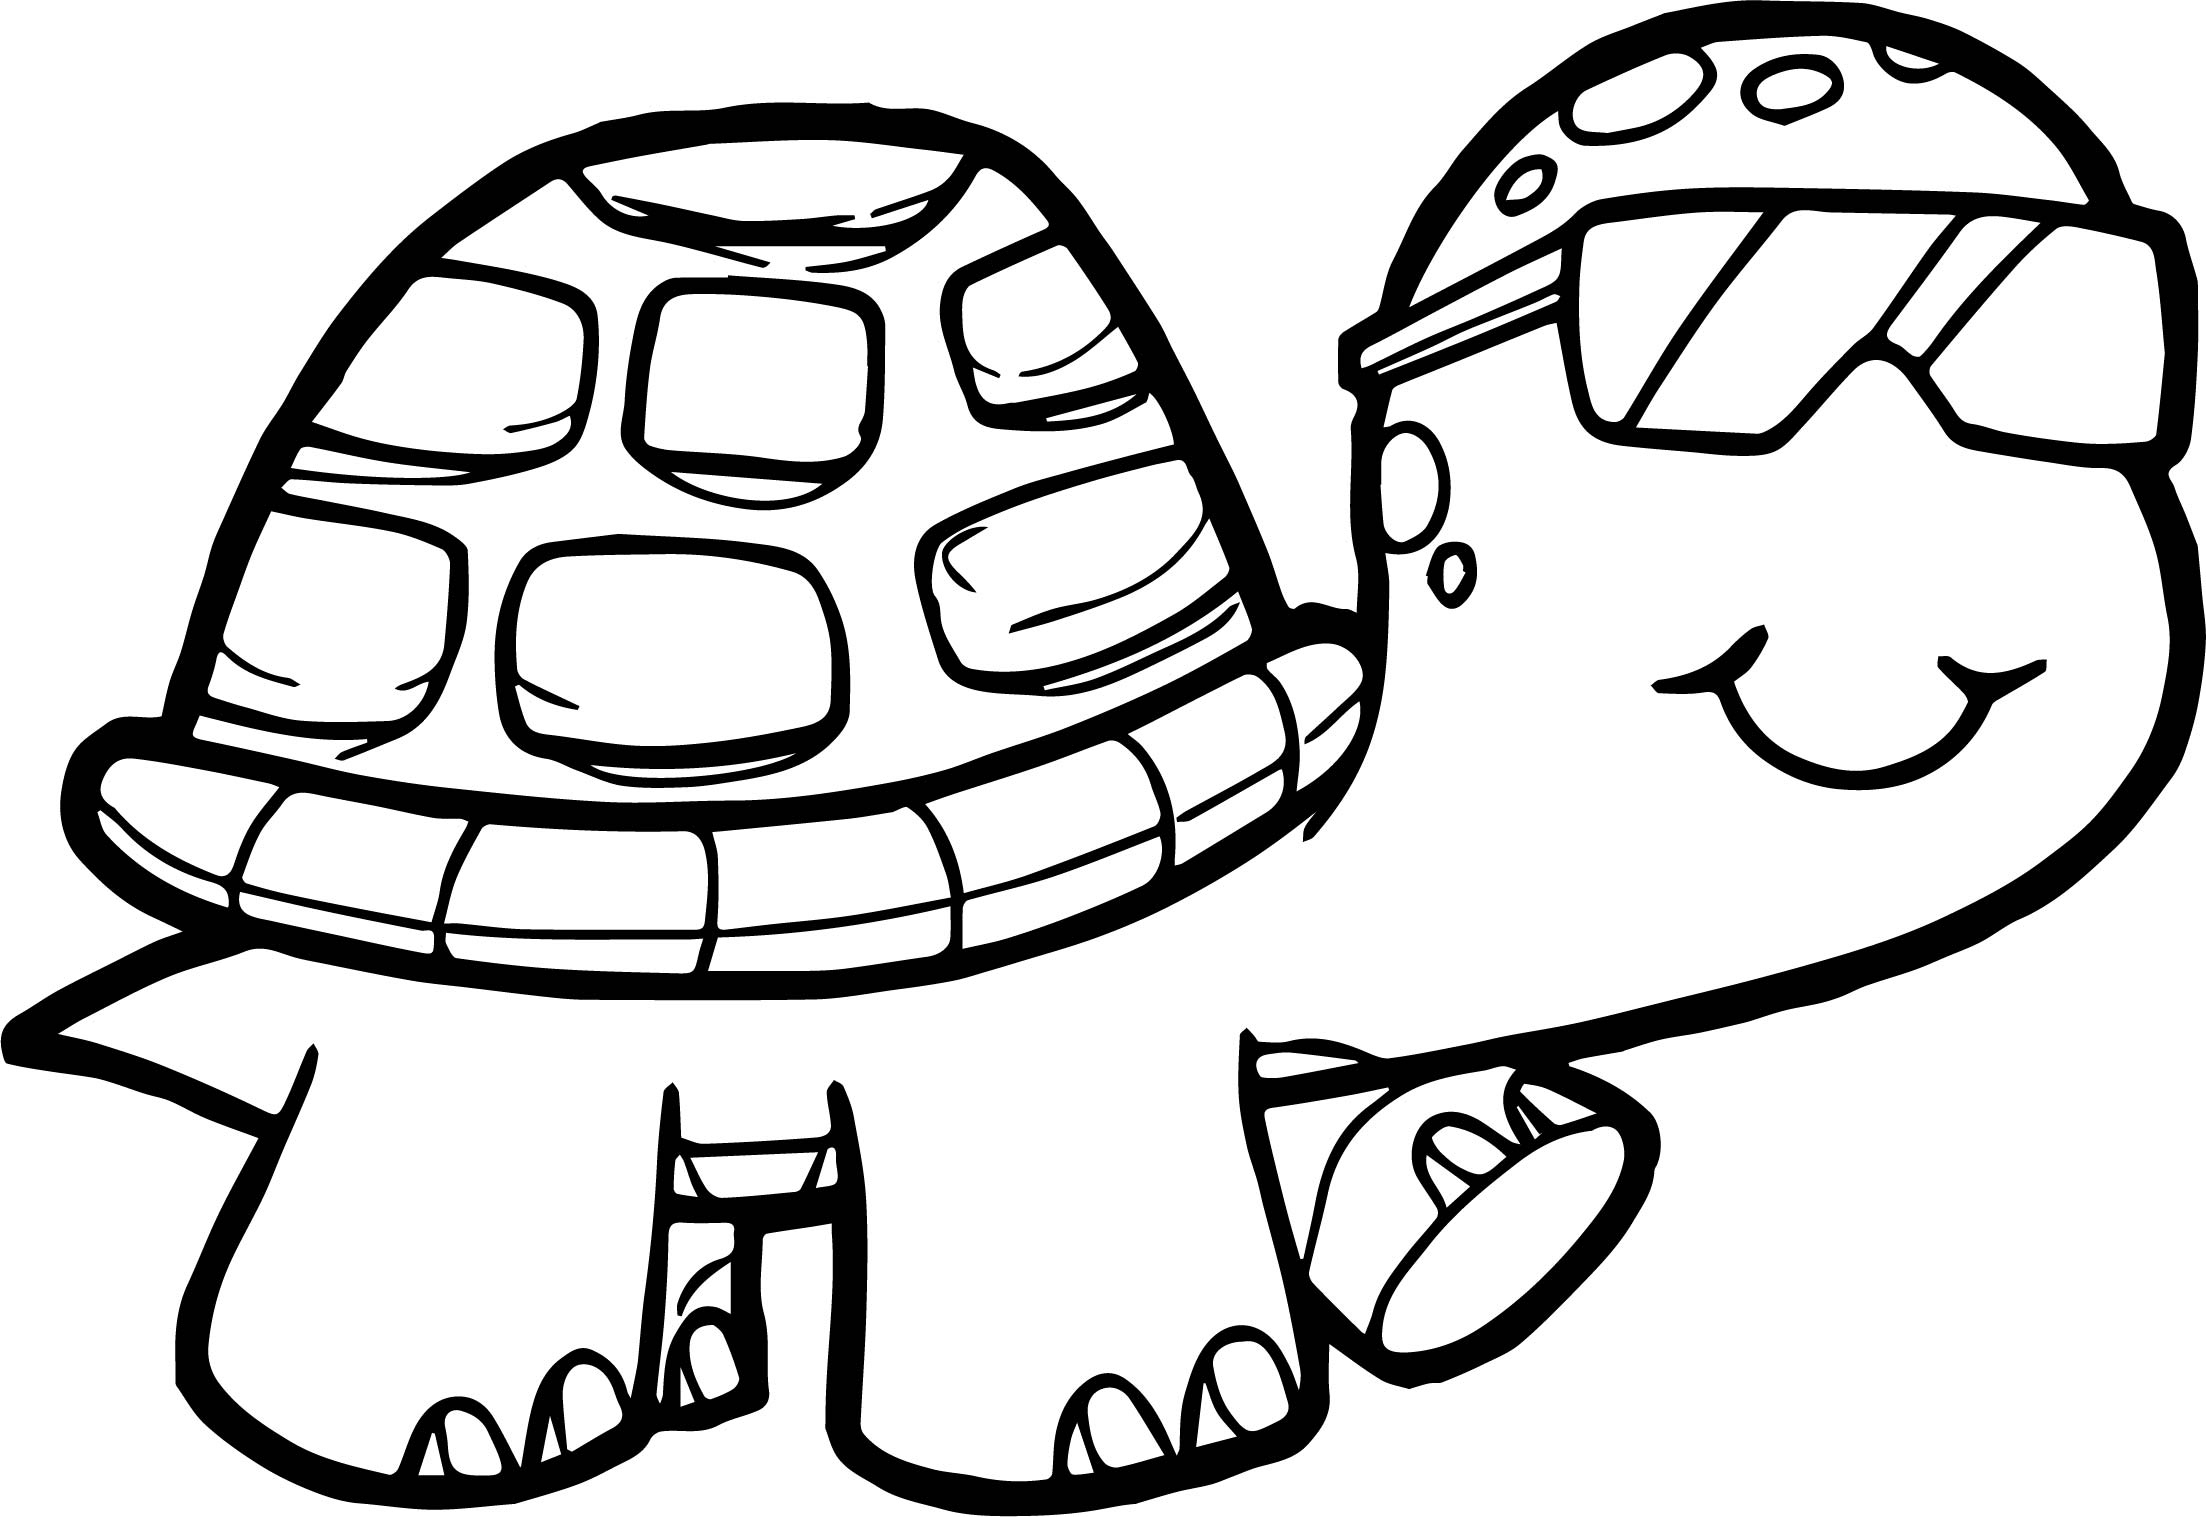 images of turtles to color free easy to print turtle coloring pages tulamama images color of turtles to